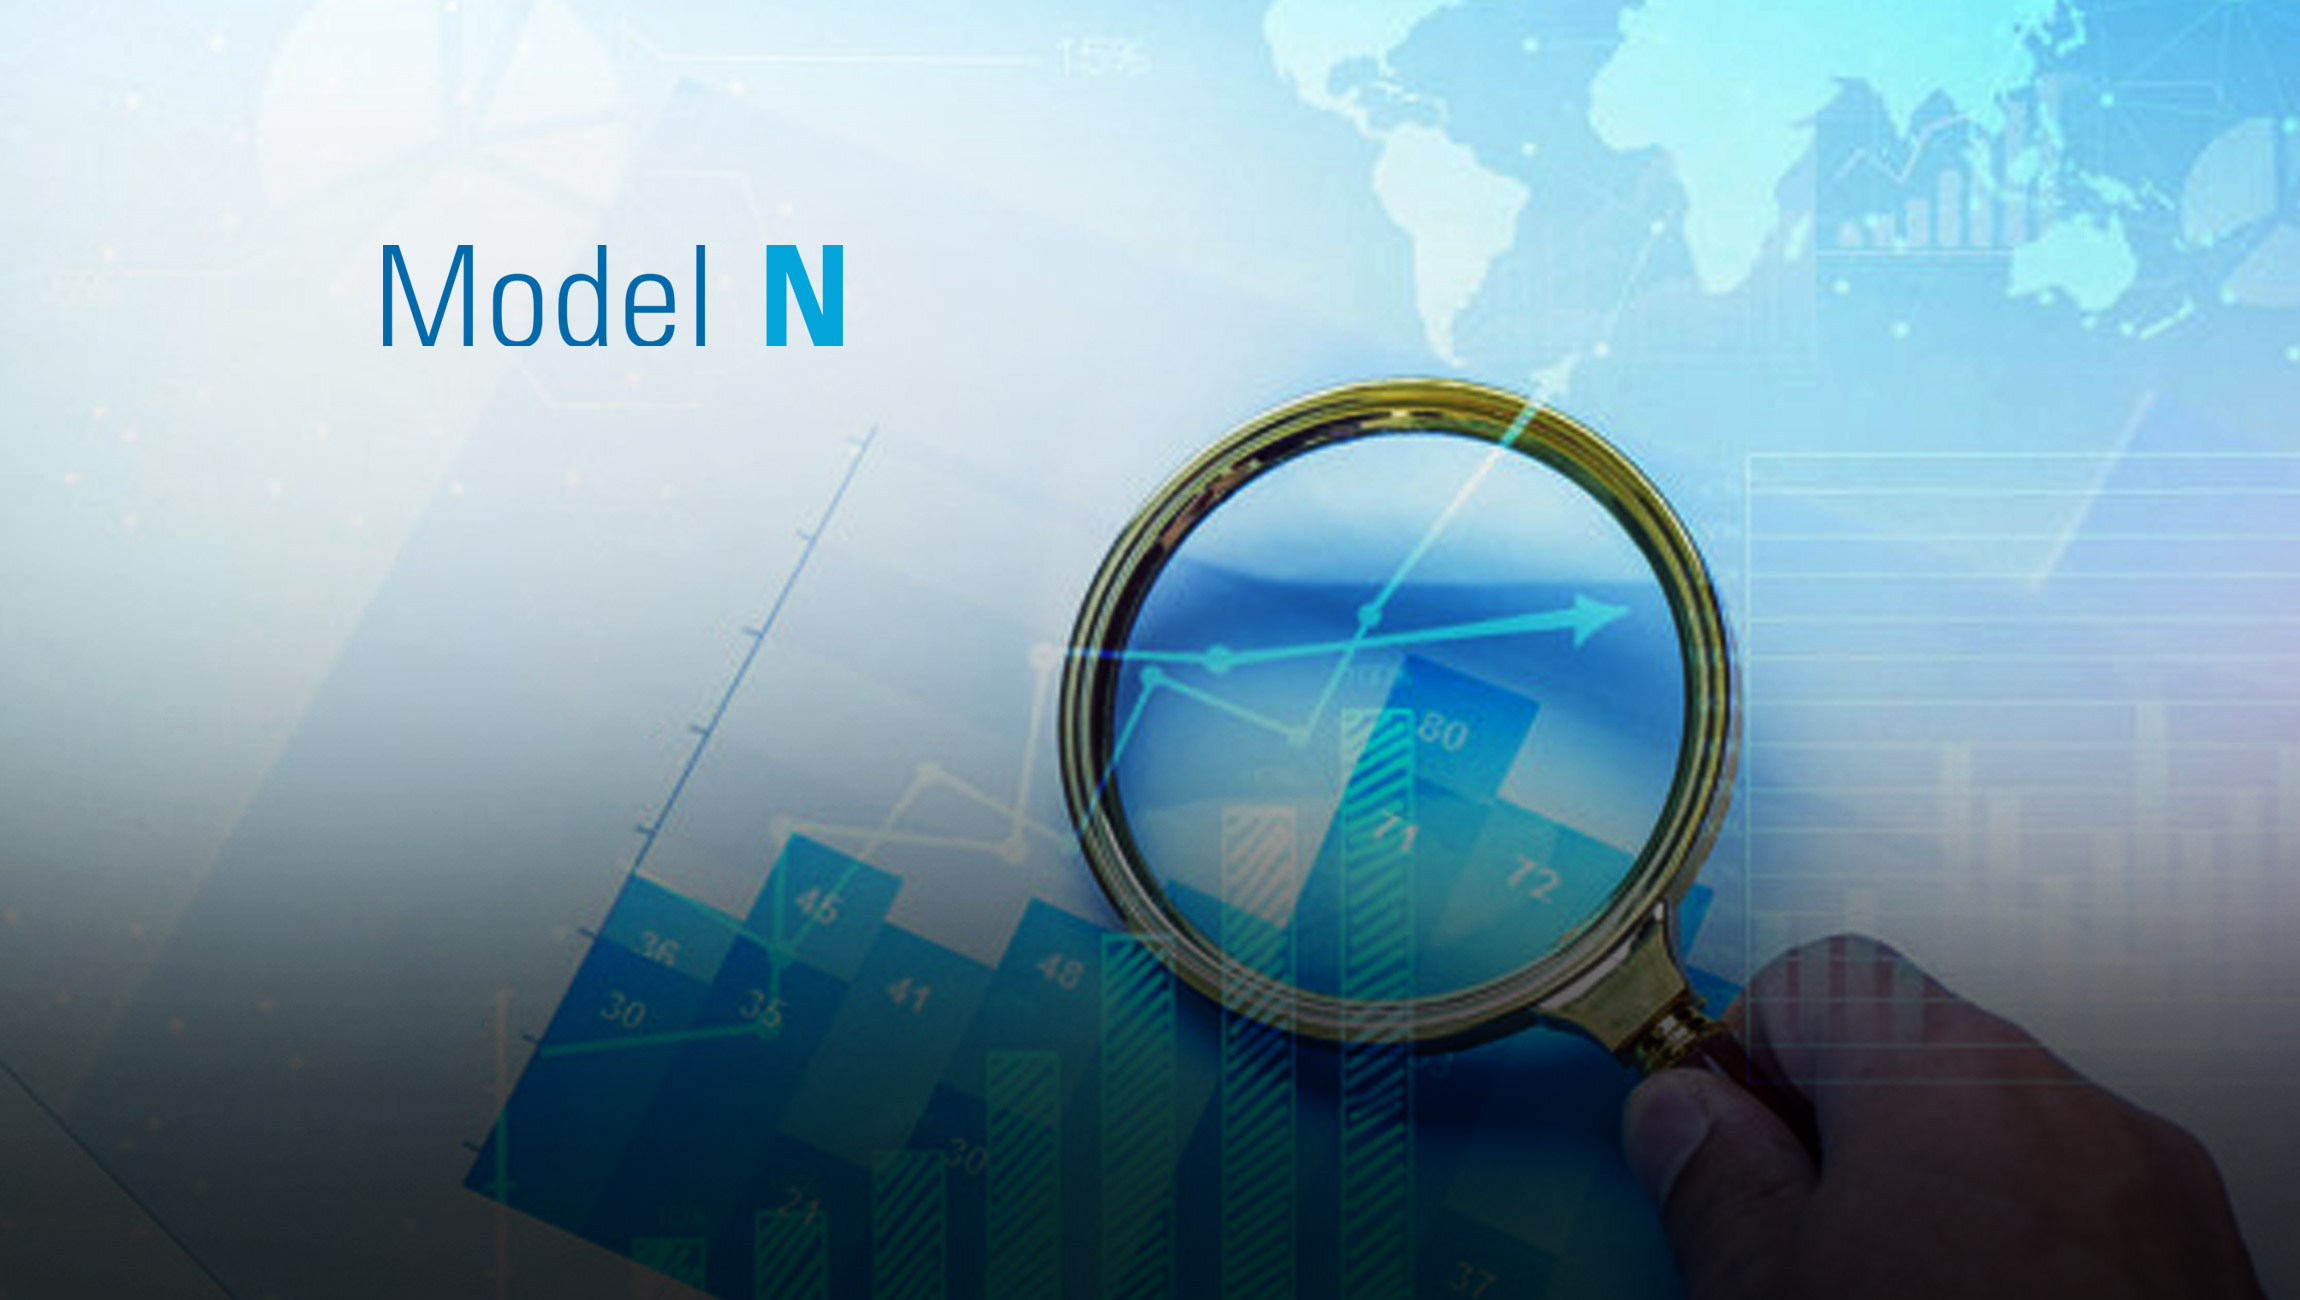 Model N to Acquire Deloitte's Life Sciences Pricing and Contracting Solutions Business